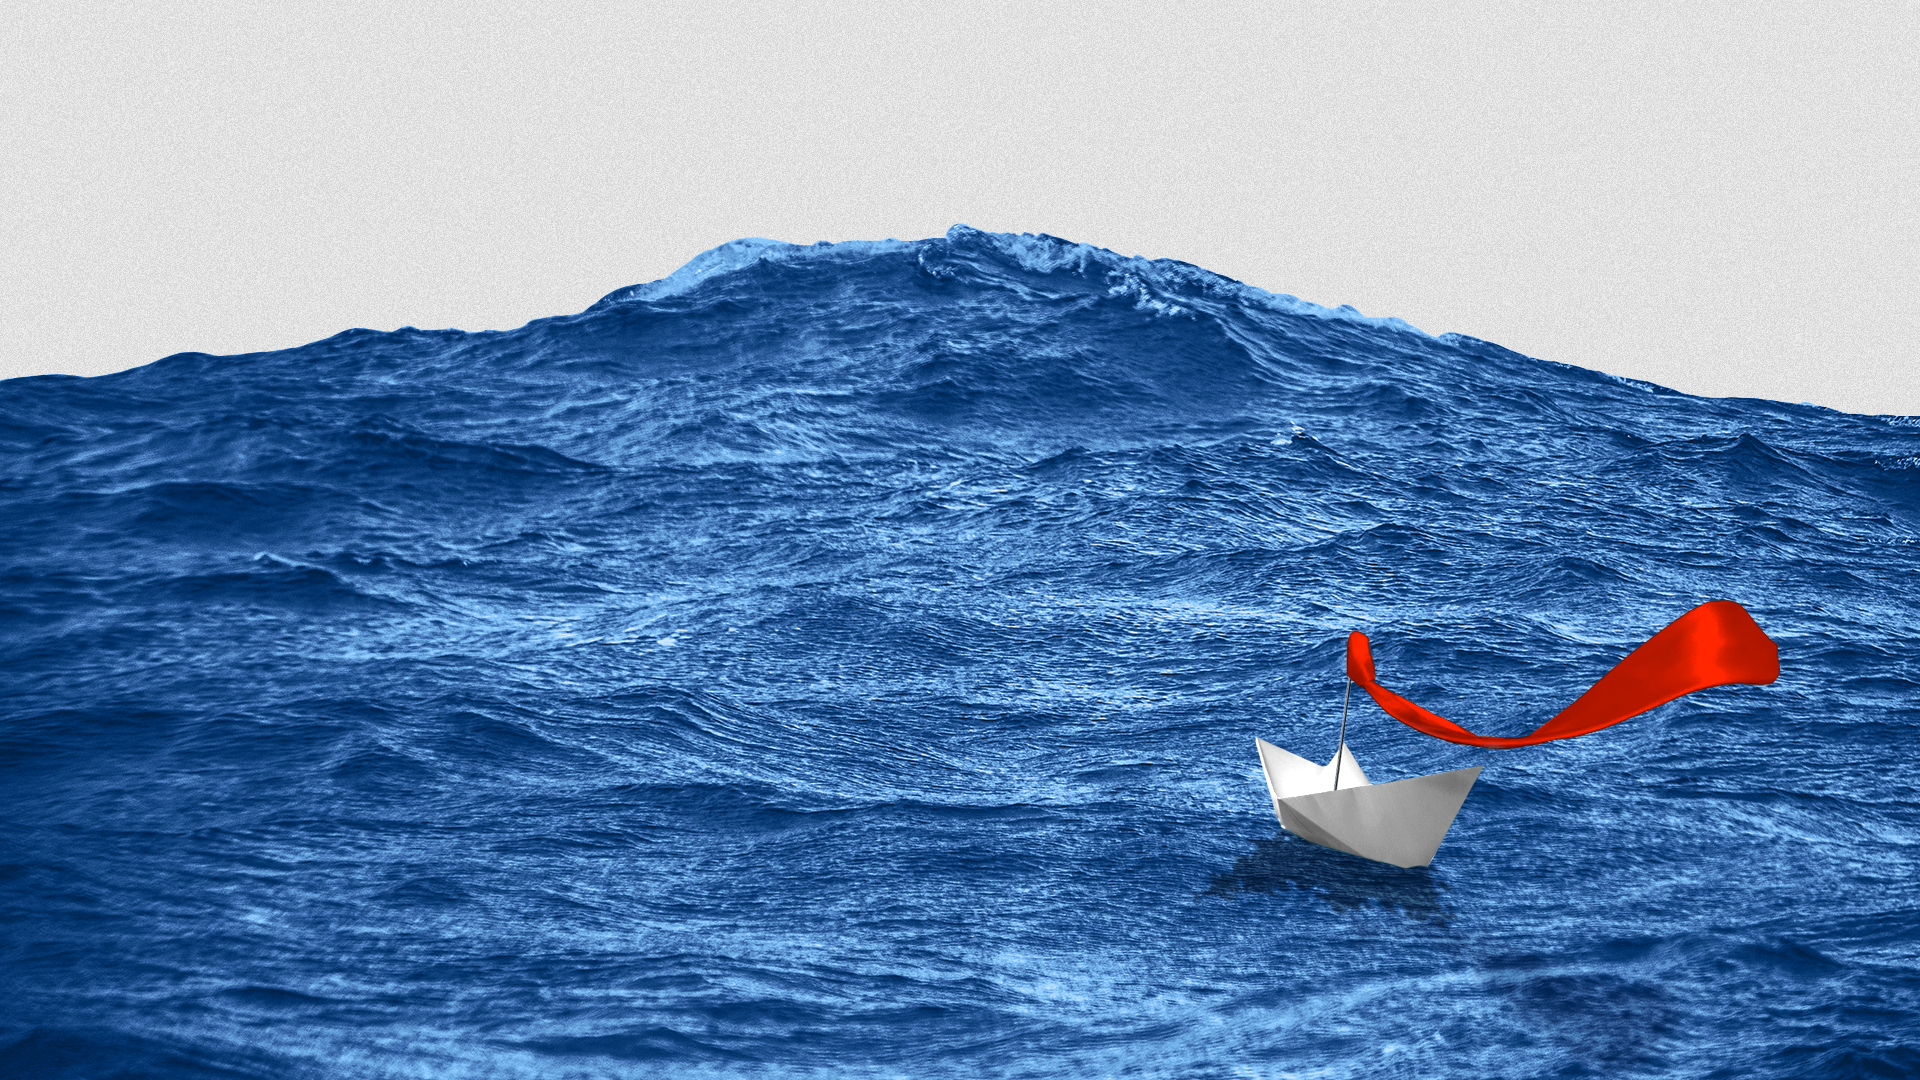 Illustration of a paper boat with a red tie as a flag going up against a giant blue wave.